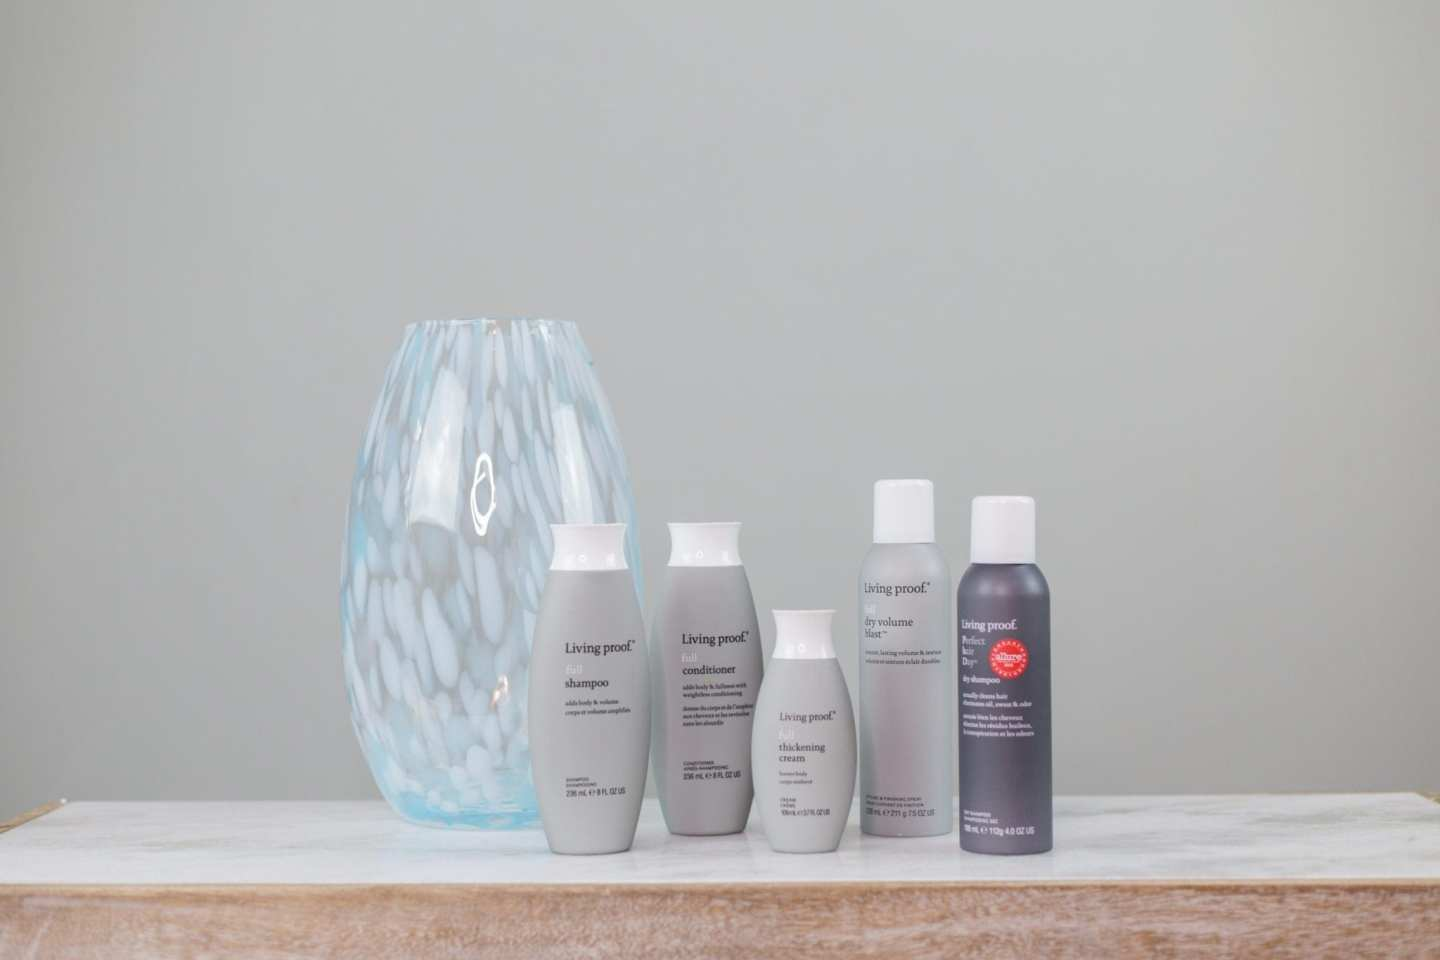 Living Proof hair care line. This is a great shampoo to create volume for people with straight hair. Add volume to straight hair with these products from Living Proof. My hair doesn't usually do anything, but this hair care line has given me lift and volume easily! I use them in this top knot tutorial.